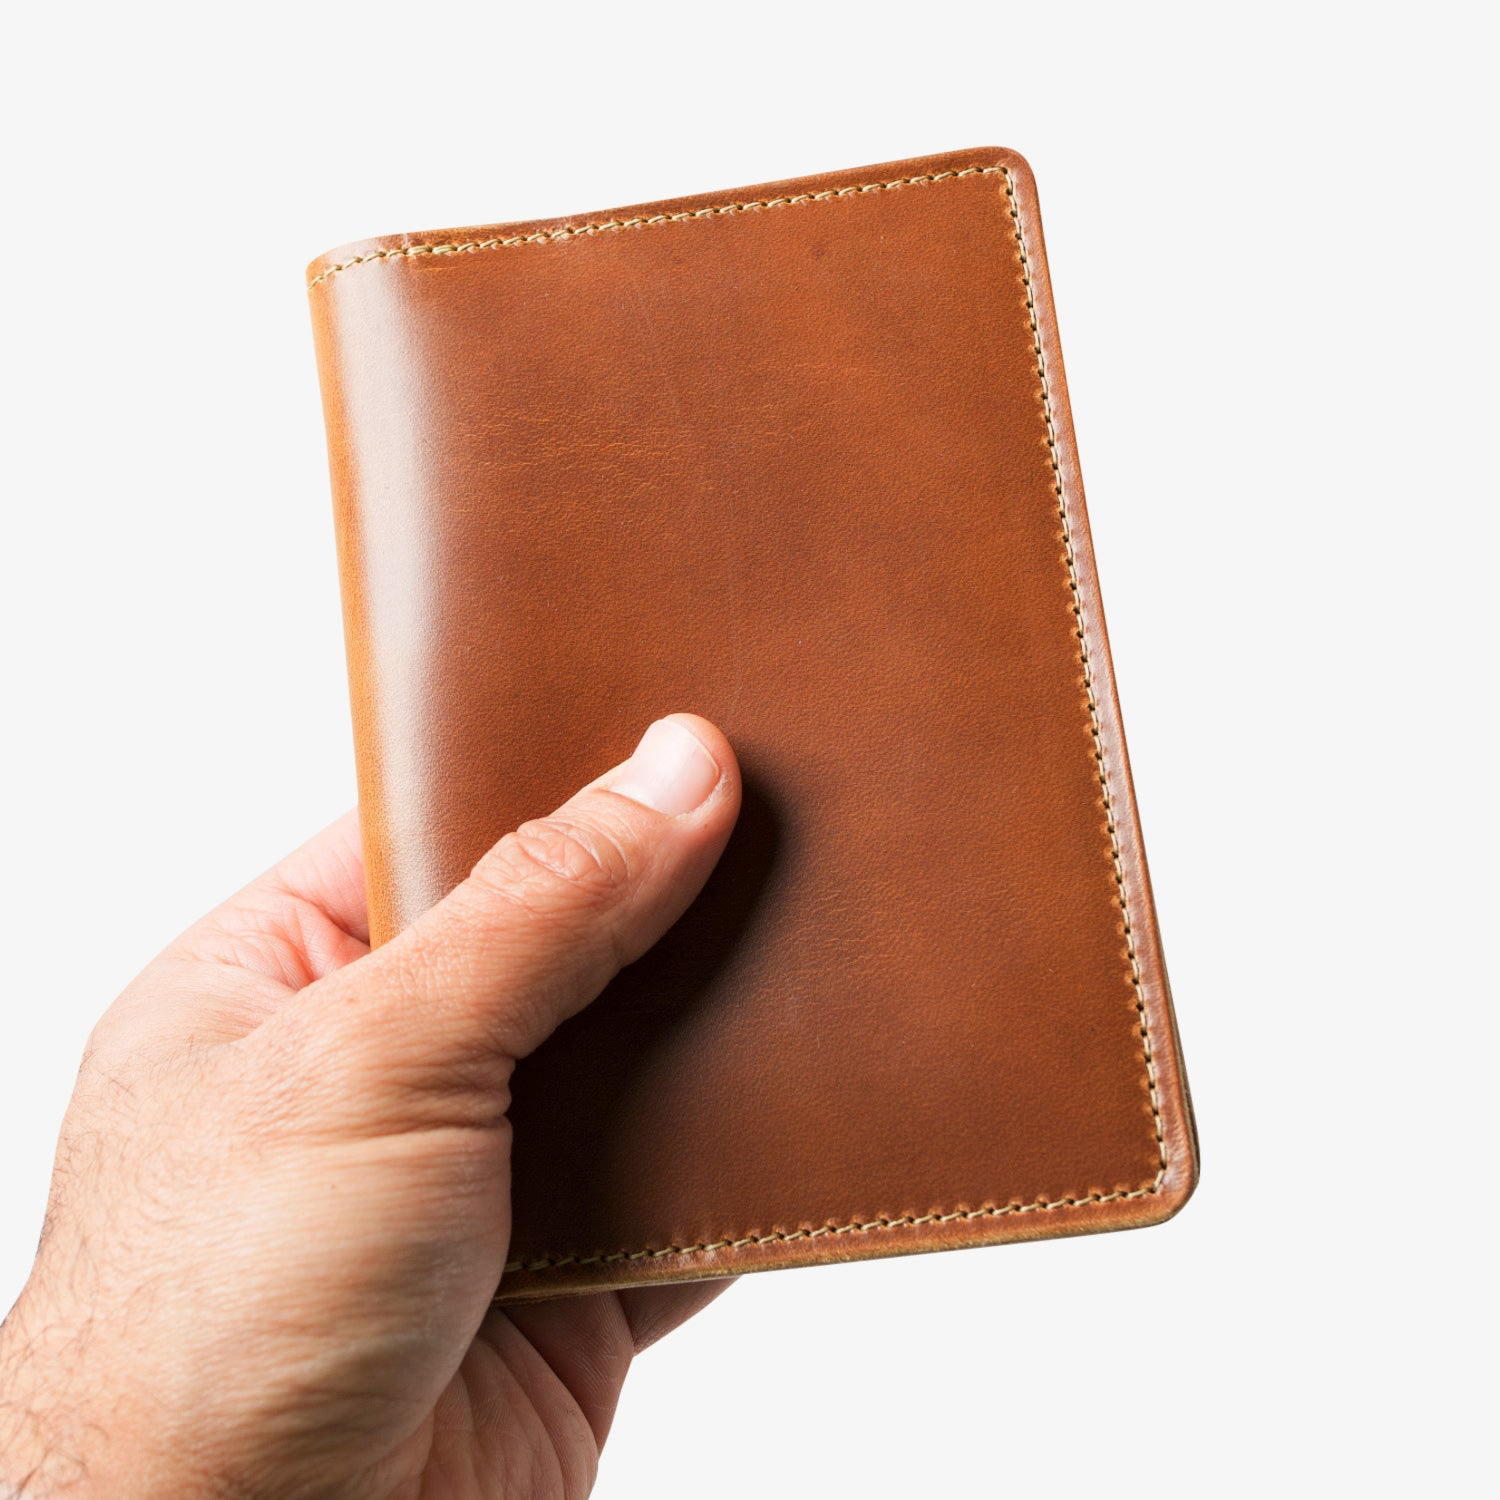 Olympia Pocket Notebook Cover for Field Notes - Moc